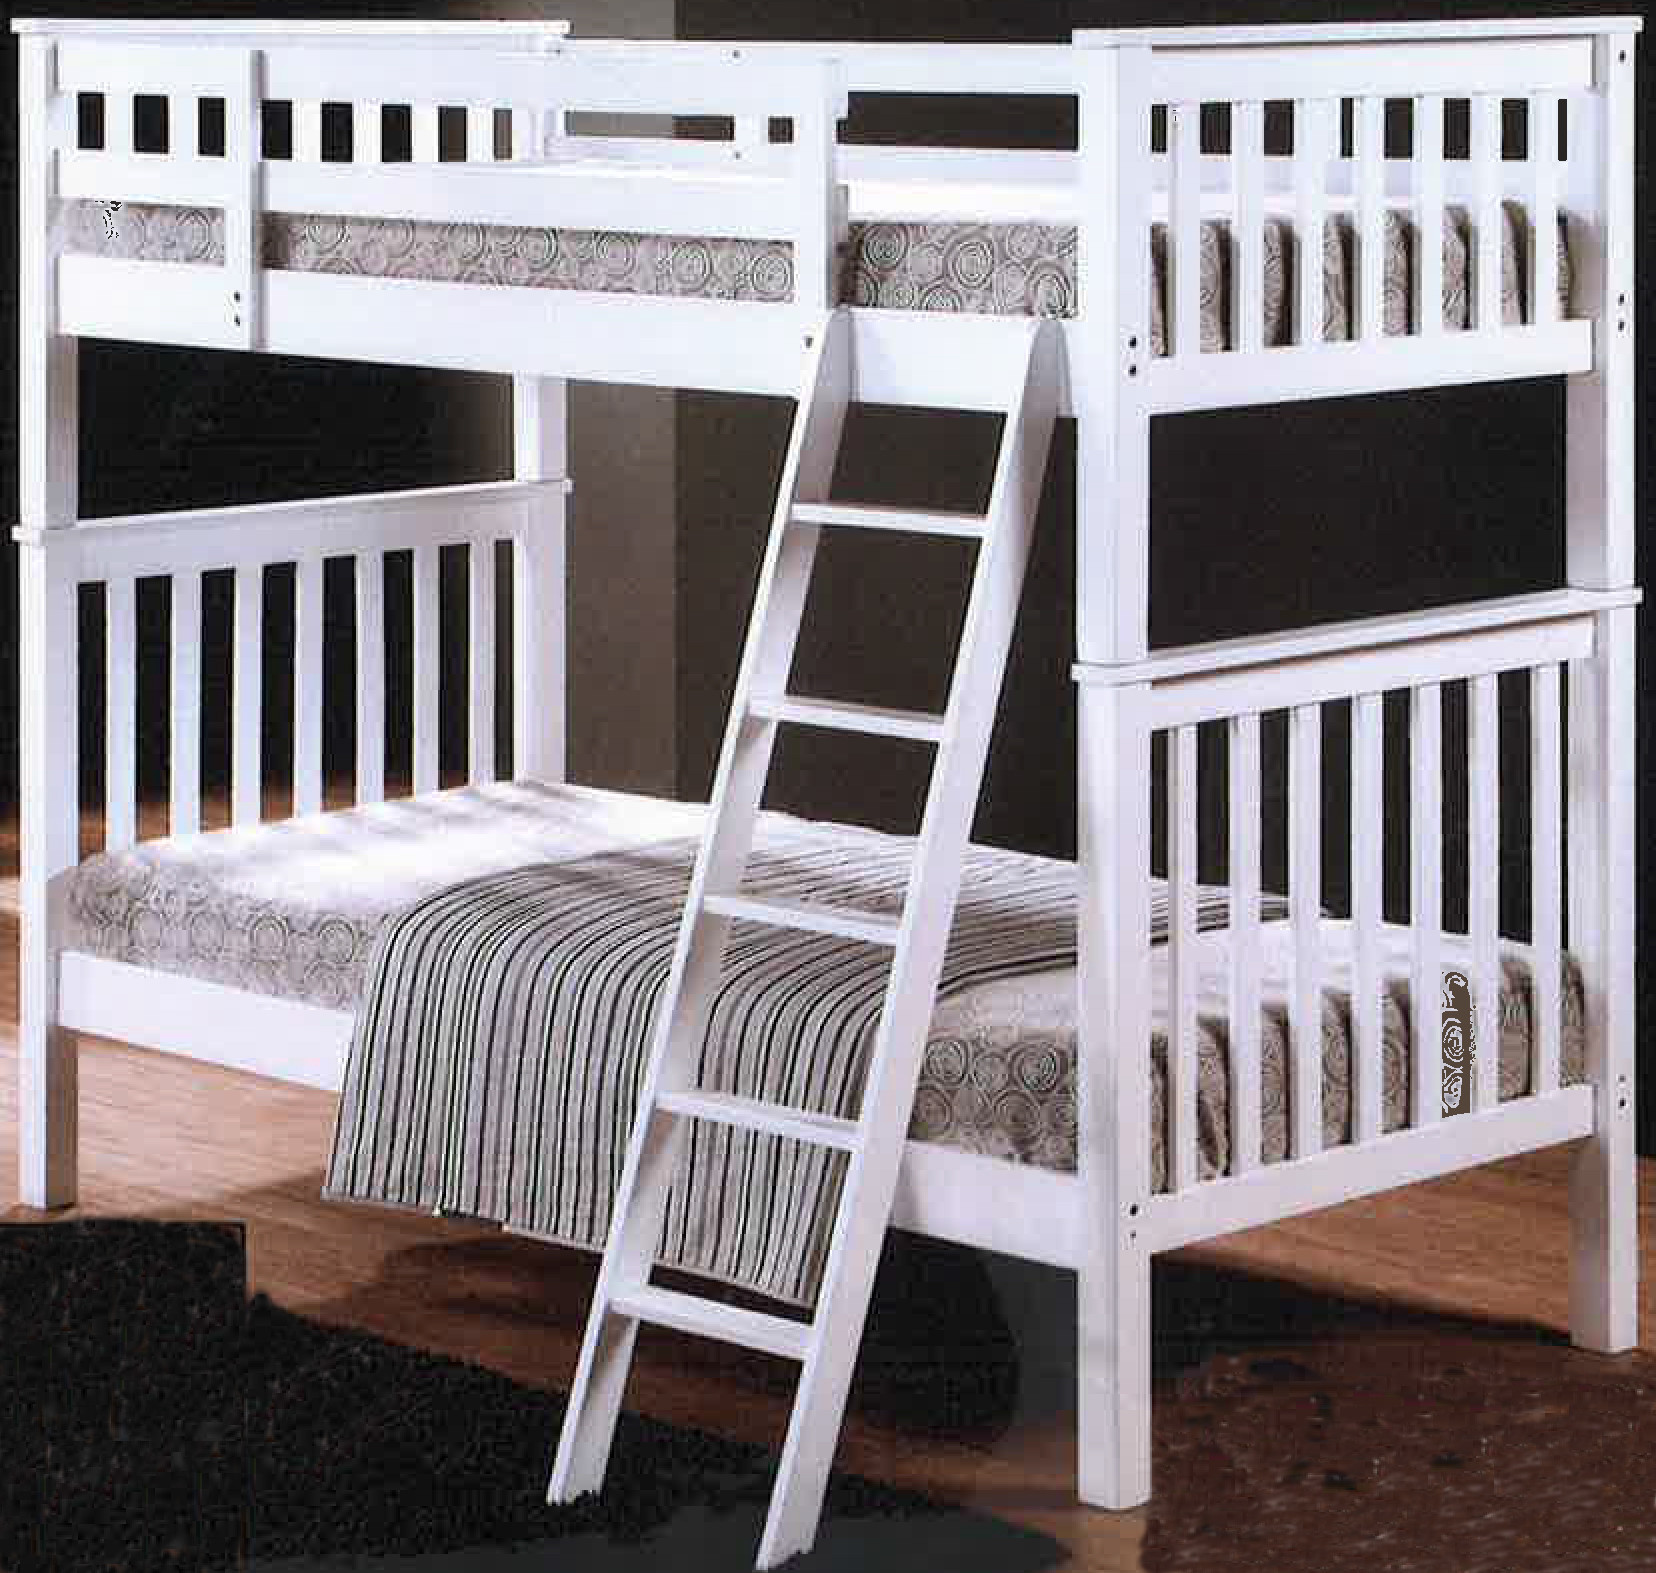 Oppland double decker bed in white beds bedroom for Double decker toddler beds